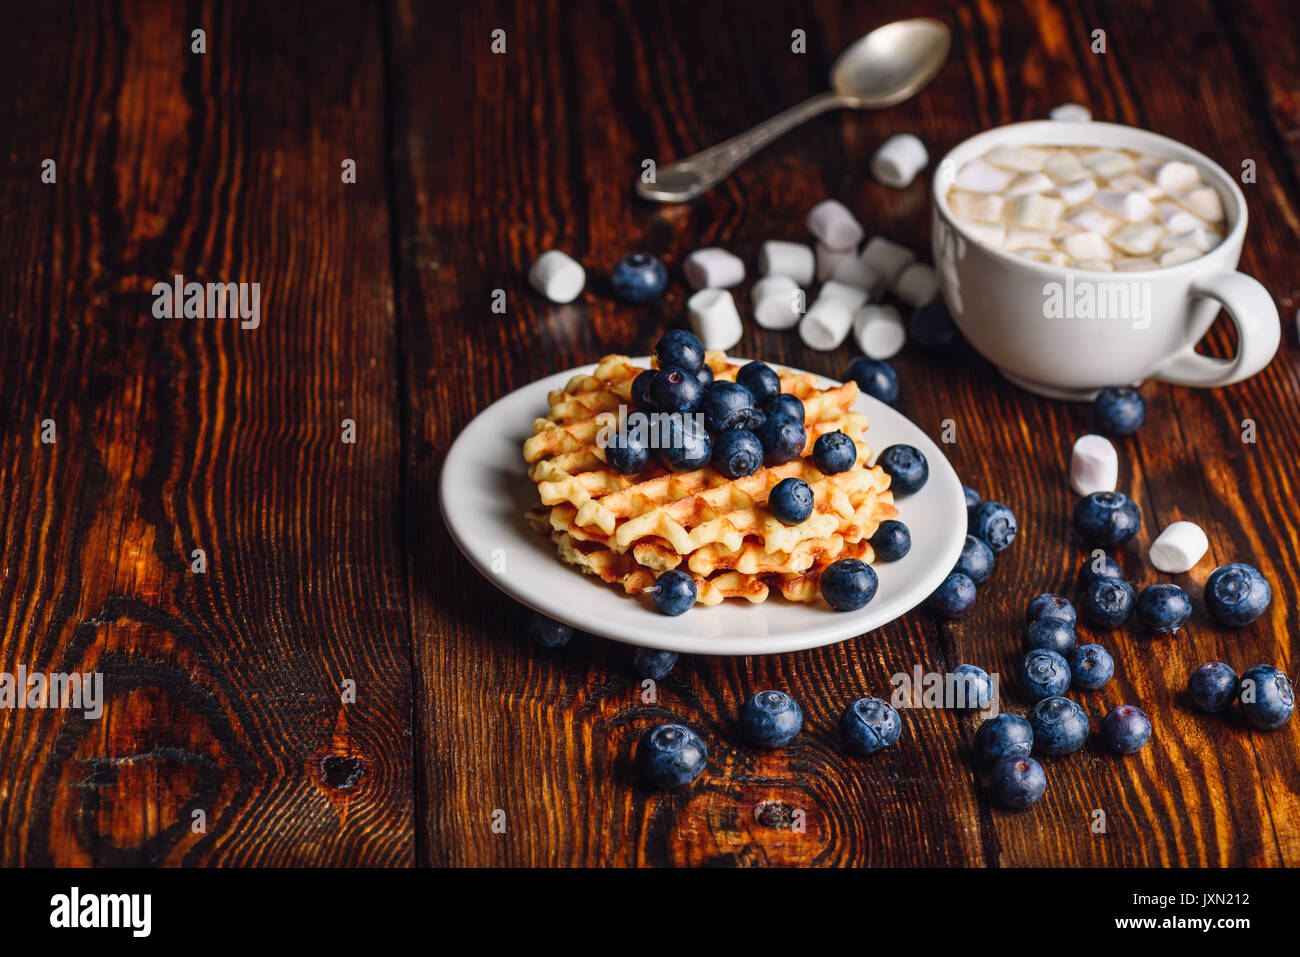 Belgian Waffles on White Plate with Fresh Blueberry and Cup of Hot Chocolate with Marshmallow. Copy space on the Left Side. - Stock Image